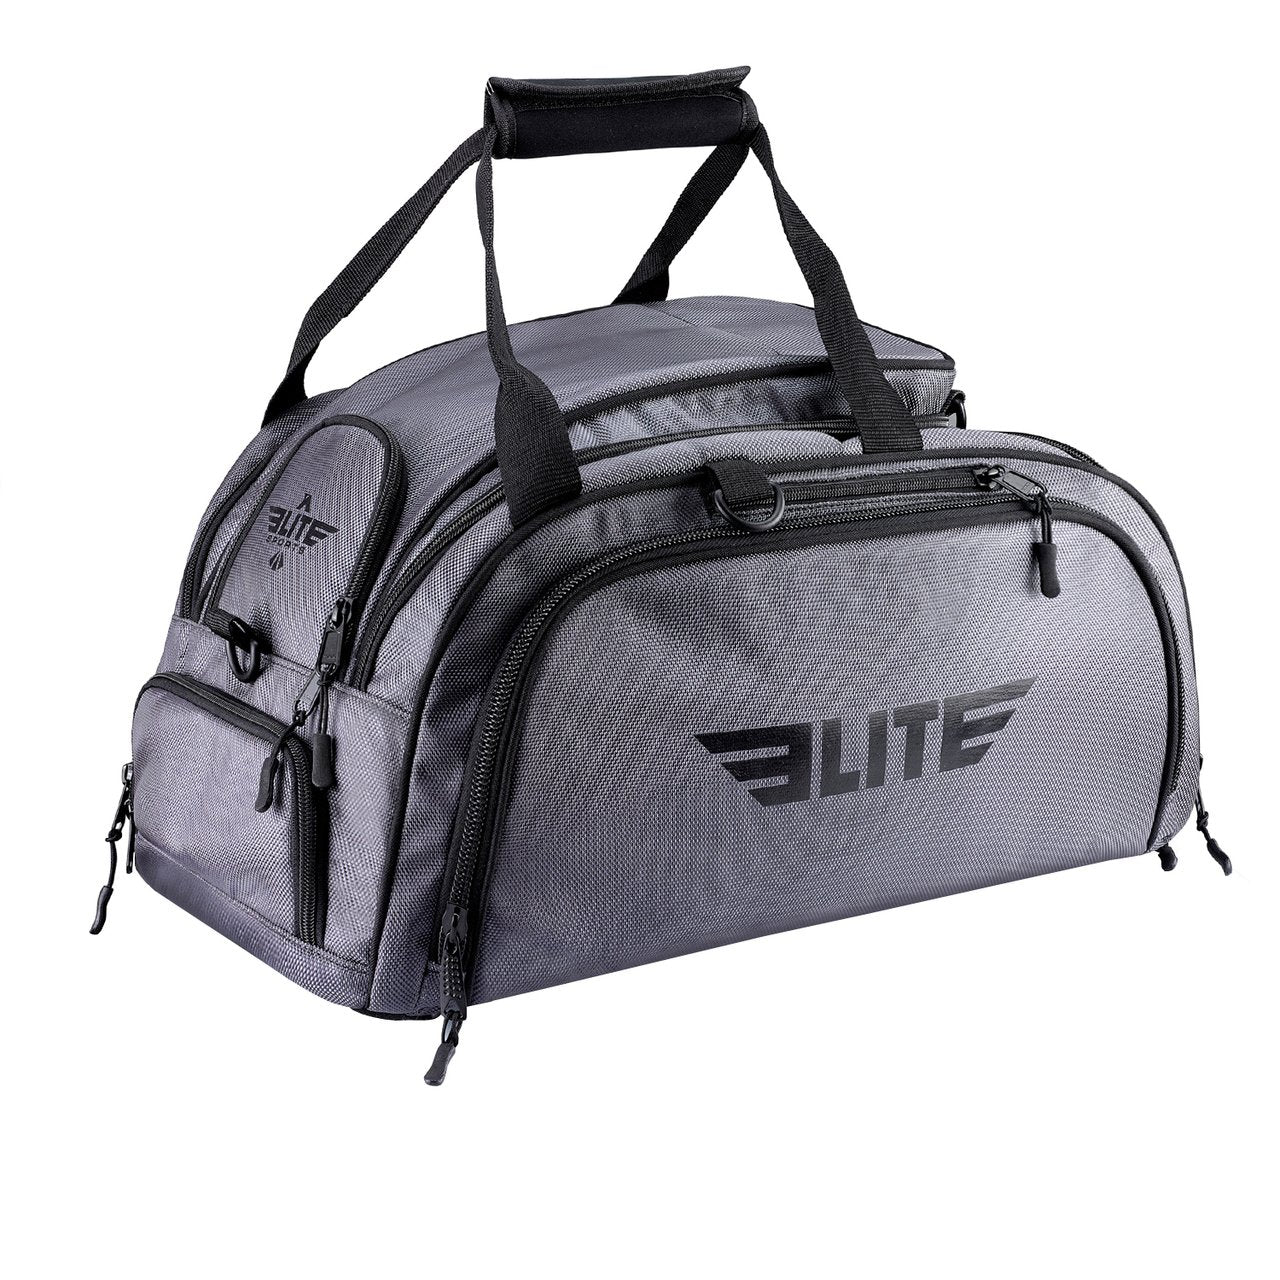 Load image into Gallery viewer, Elite Sports Warrior Series Gray Medium Duffel Crossfit Gear Gym Bag & Backpack